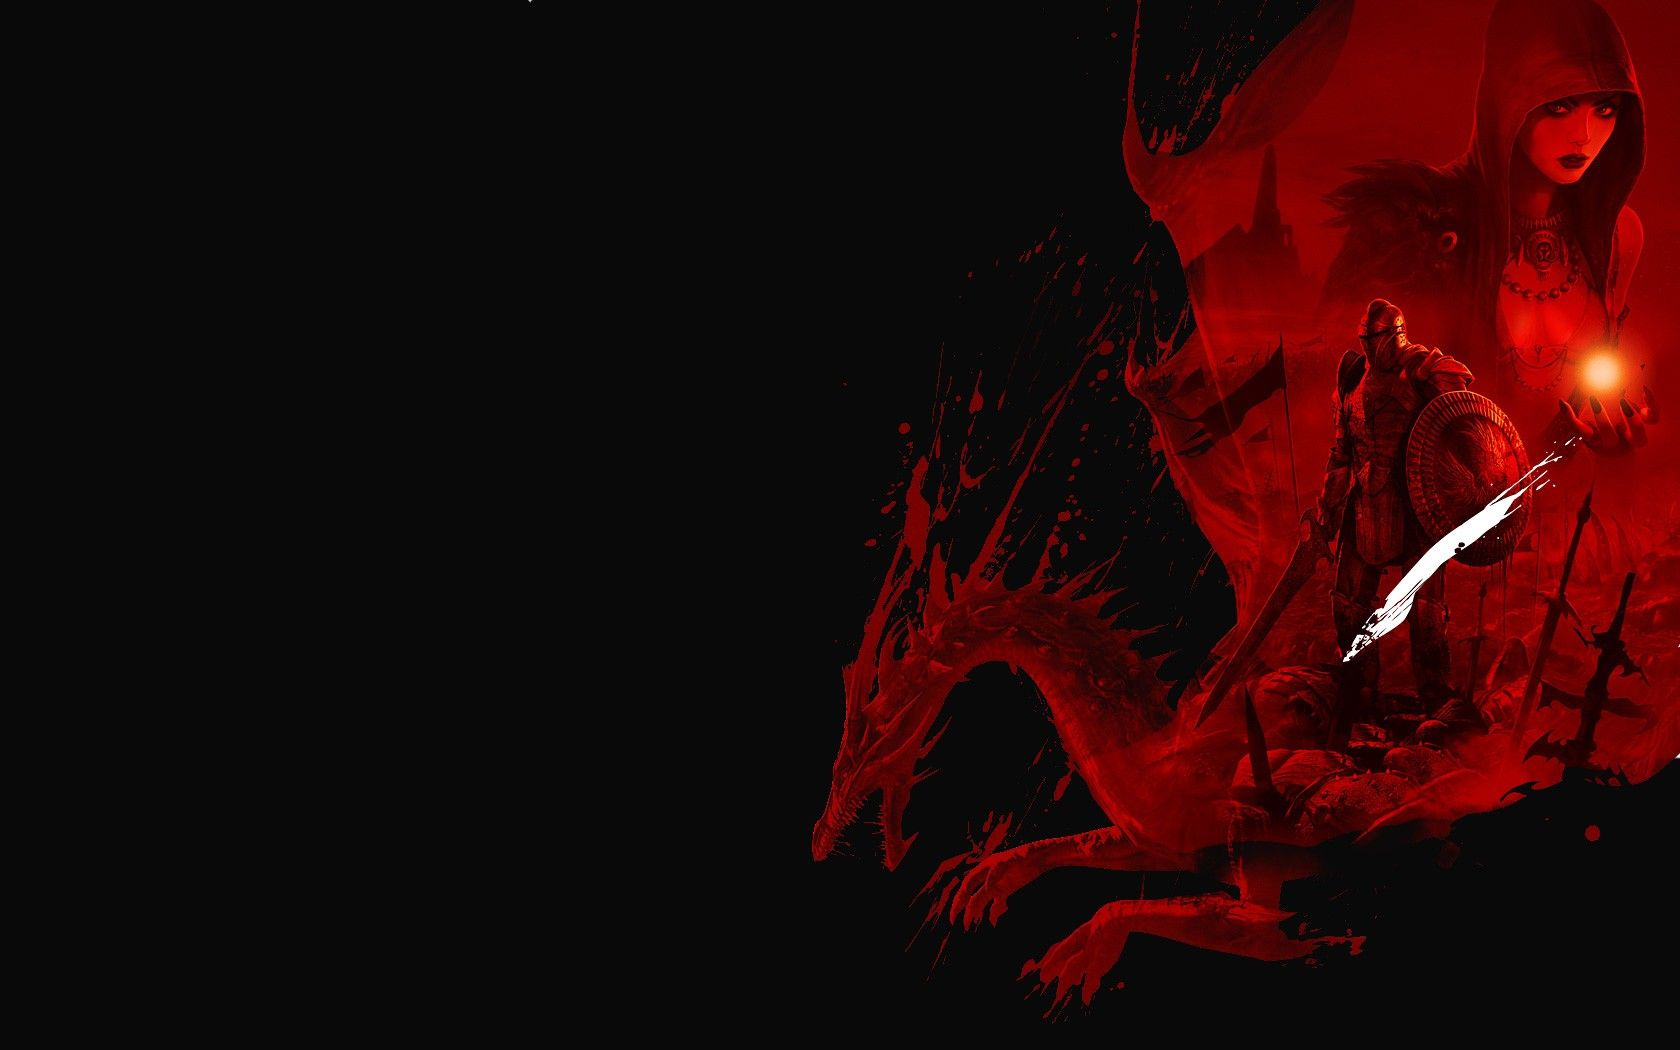 Red Dragon Fantasy Black Hd Wallpaper Red Wallpaper Black Wallpaper